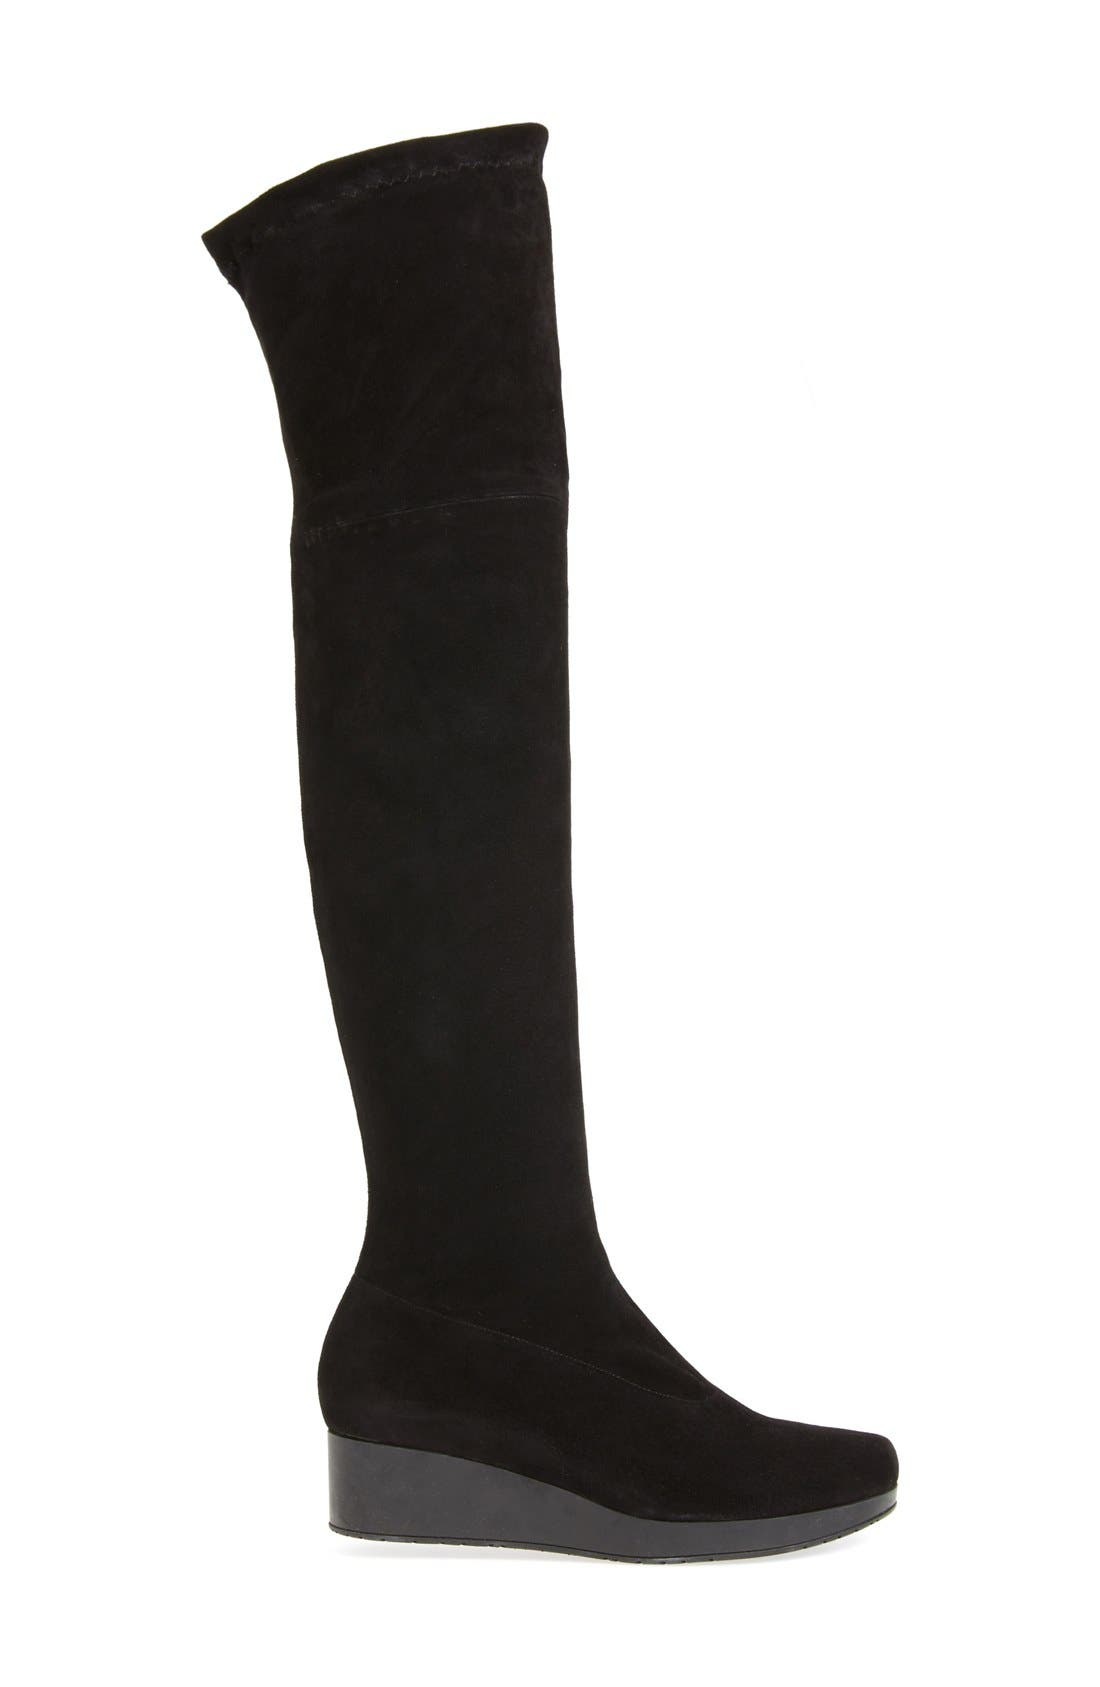 Wedge Over the Knee Boot,                             Alternate thumbnail 4, color,                             005